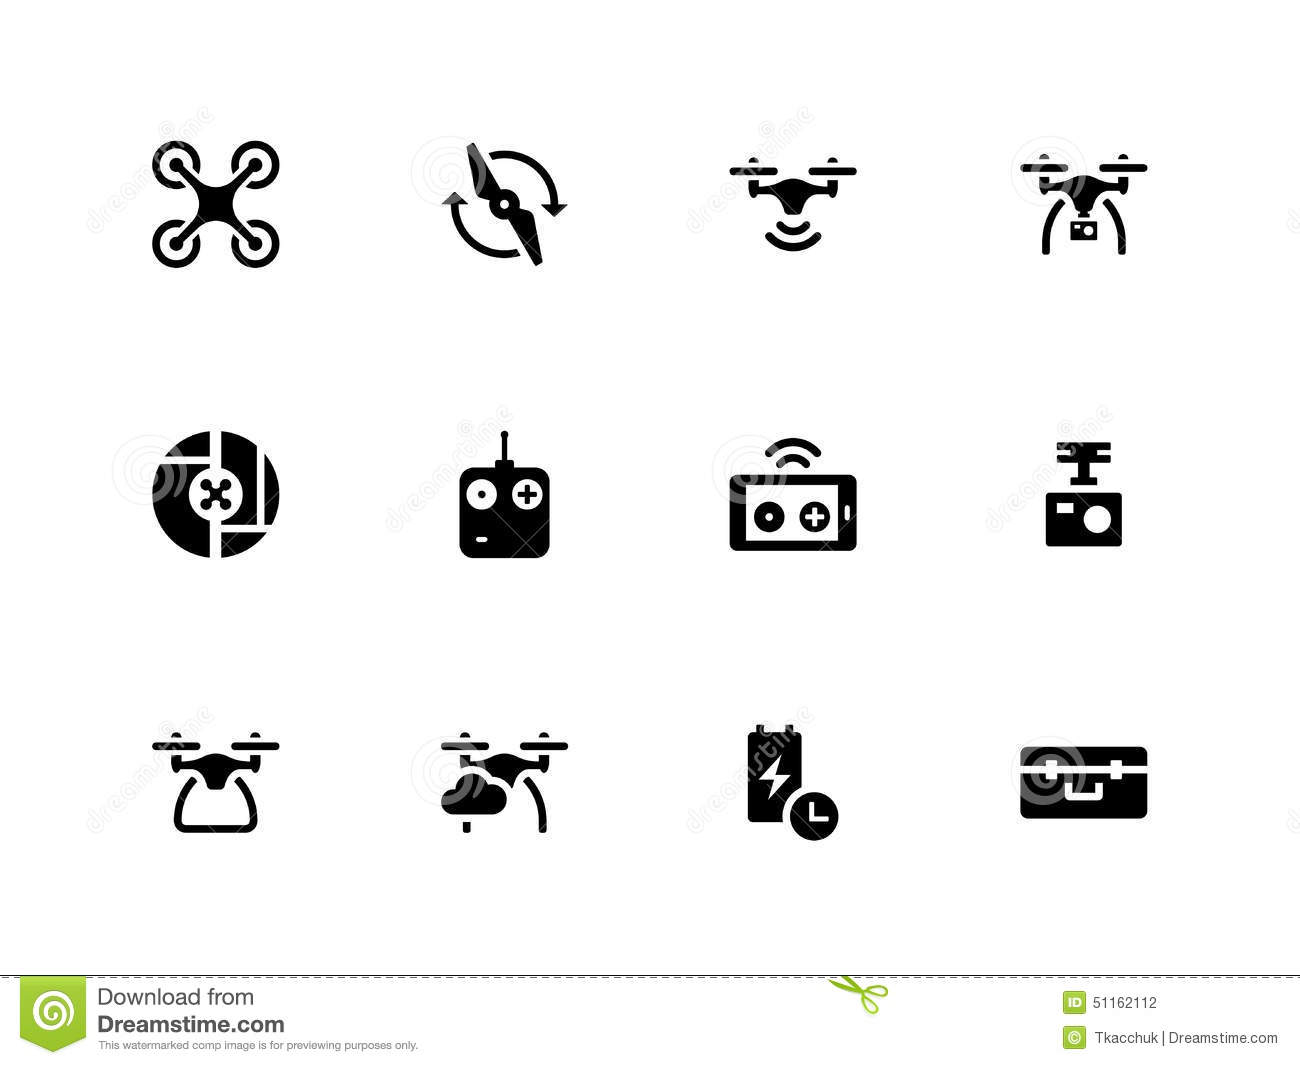 6 rotor remote control helicopter camera with Stock Illustration Quadcopter Flying Drone Icons White Background Vector Illustration Image51162112 on Showthread in addition 1200343 32796957827 furthermore Hexacopter Microcopter 24 2 2010 together with Stock Illustration Quadcopter Flying Drone Icons White Background Vector Illustration Image51162112 likewise 321101959386.